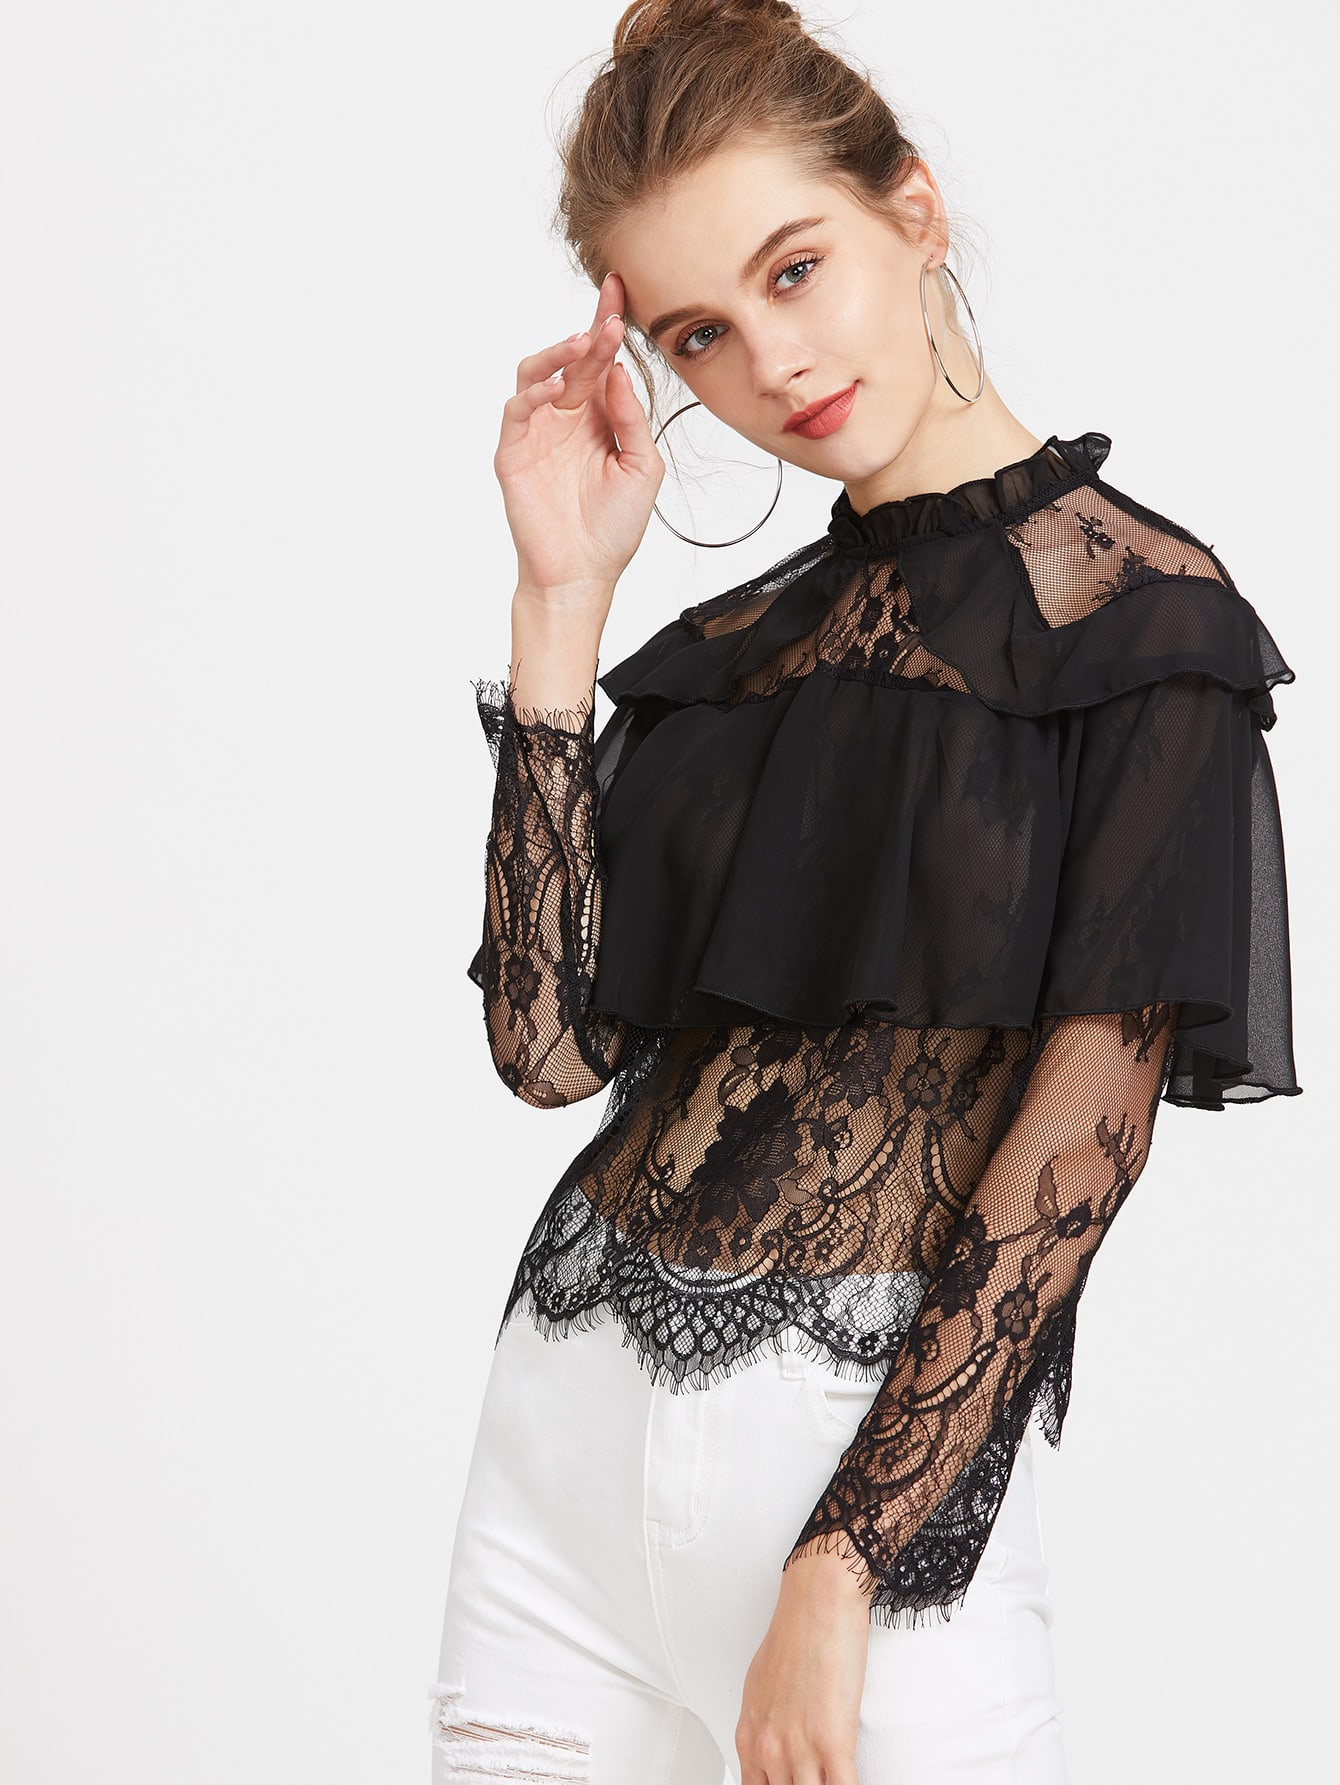 Contrast Lace Ruffle Trim Sheer Blouse blouse170310403